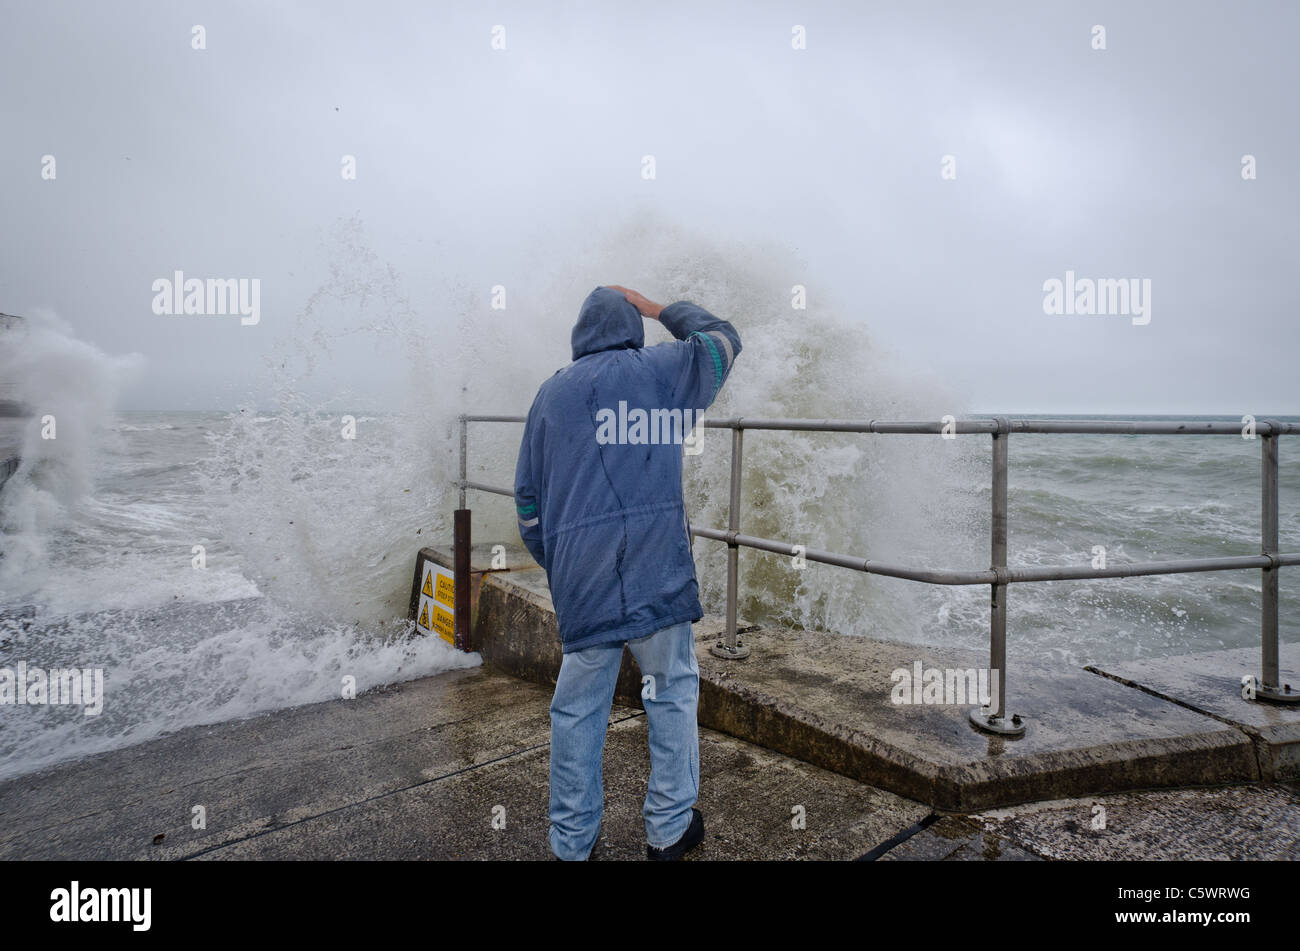 A man braves the stormy weather at Saltdean, ast East Sussex, promenade, as waves hit the breakwater. - Stock Image